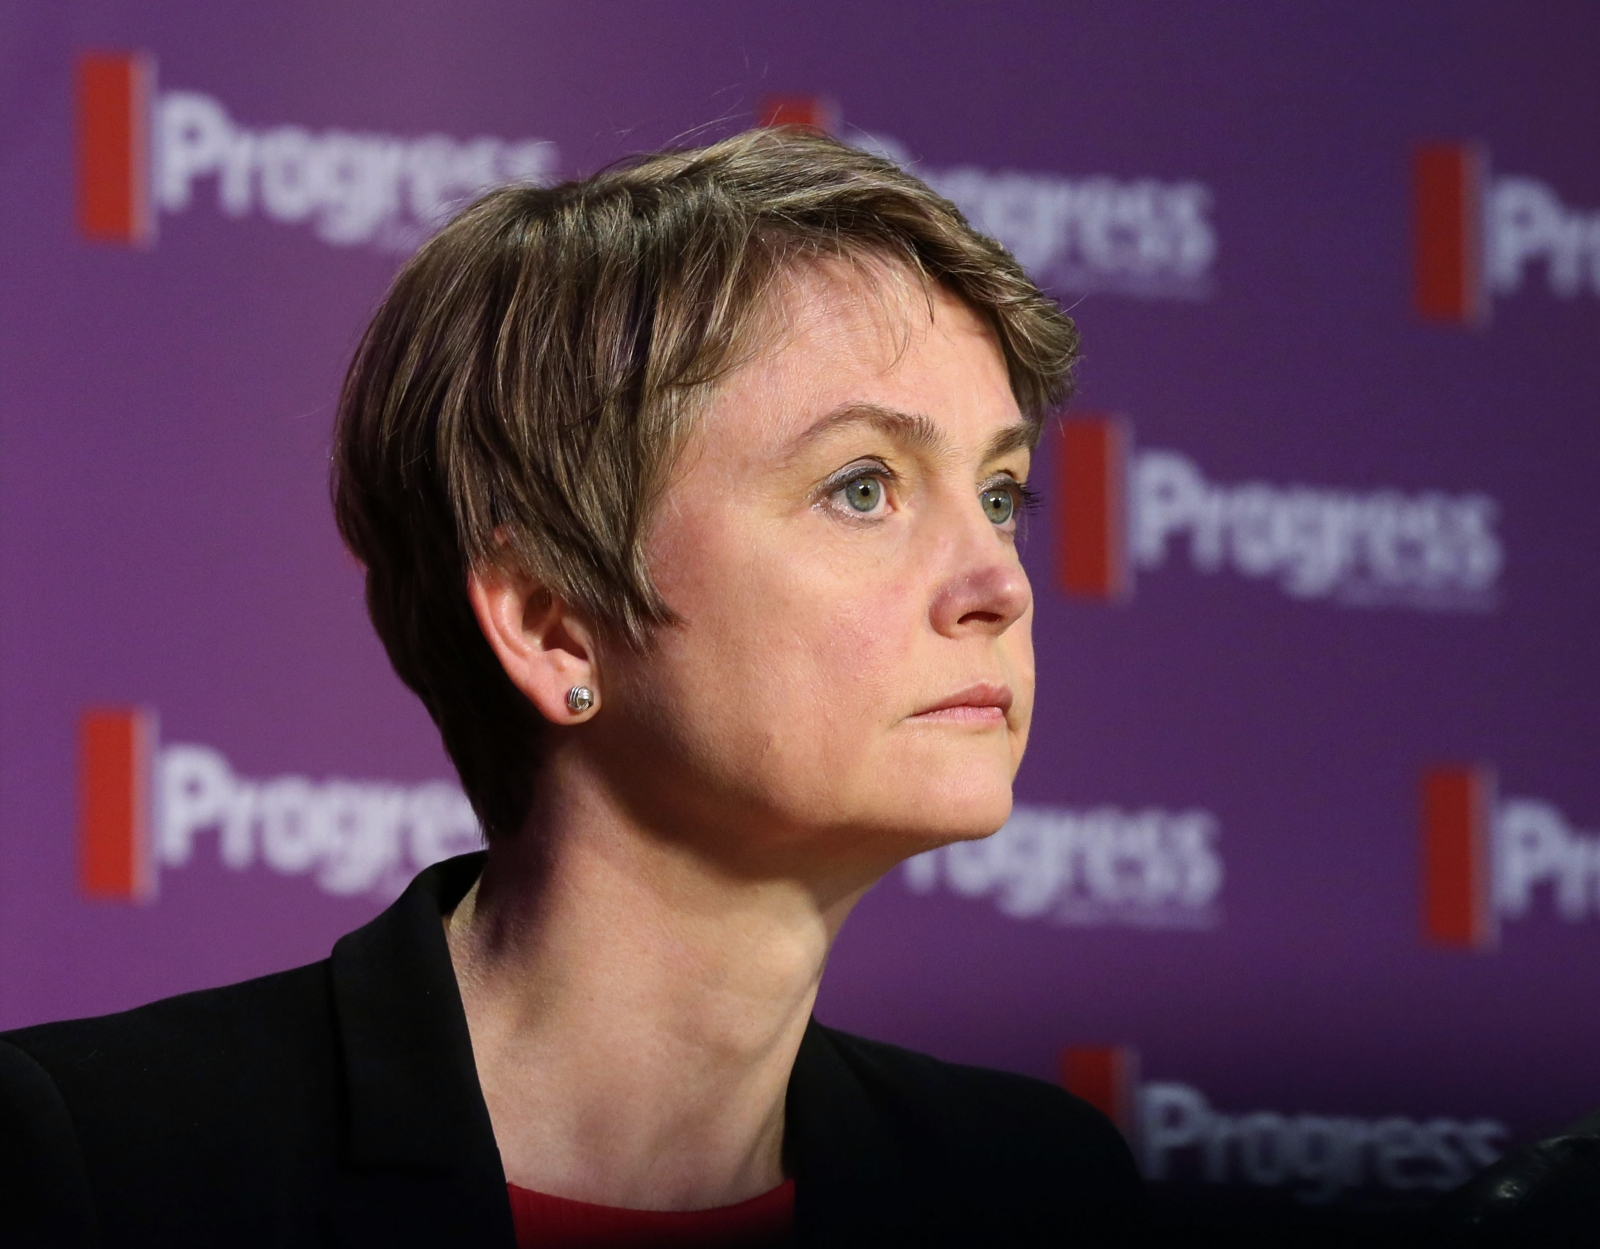 Yvette Cooper sex education plan